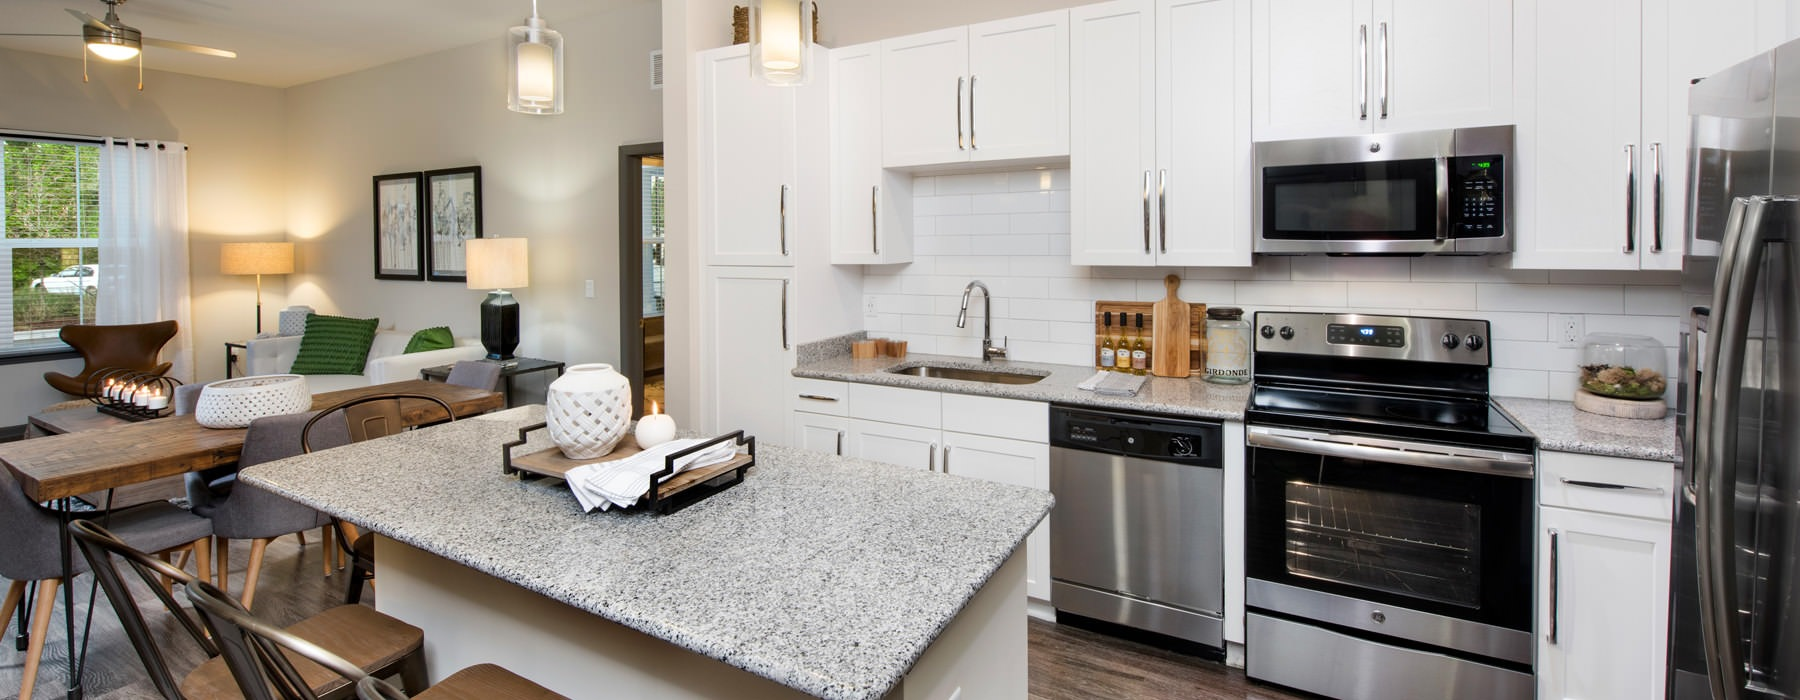 Kitchen with white cabinets, quartz countertops, and pendant lights